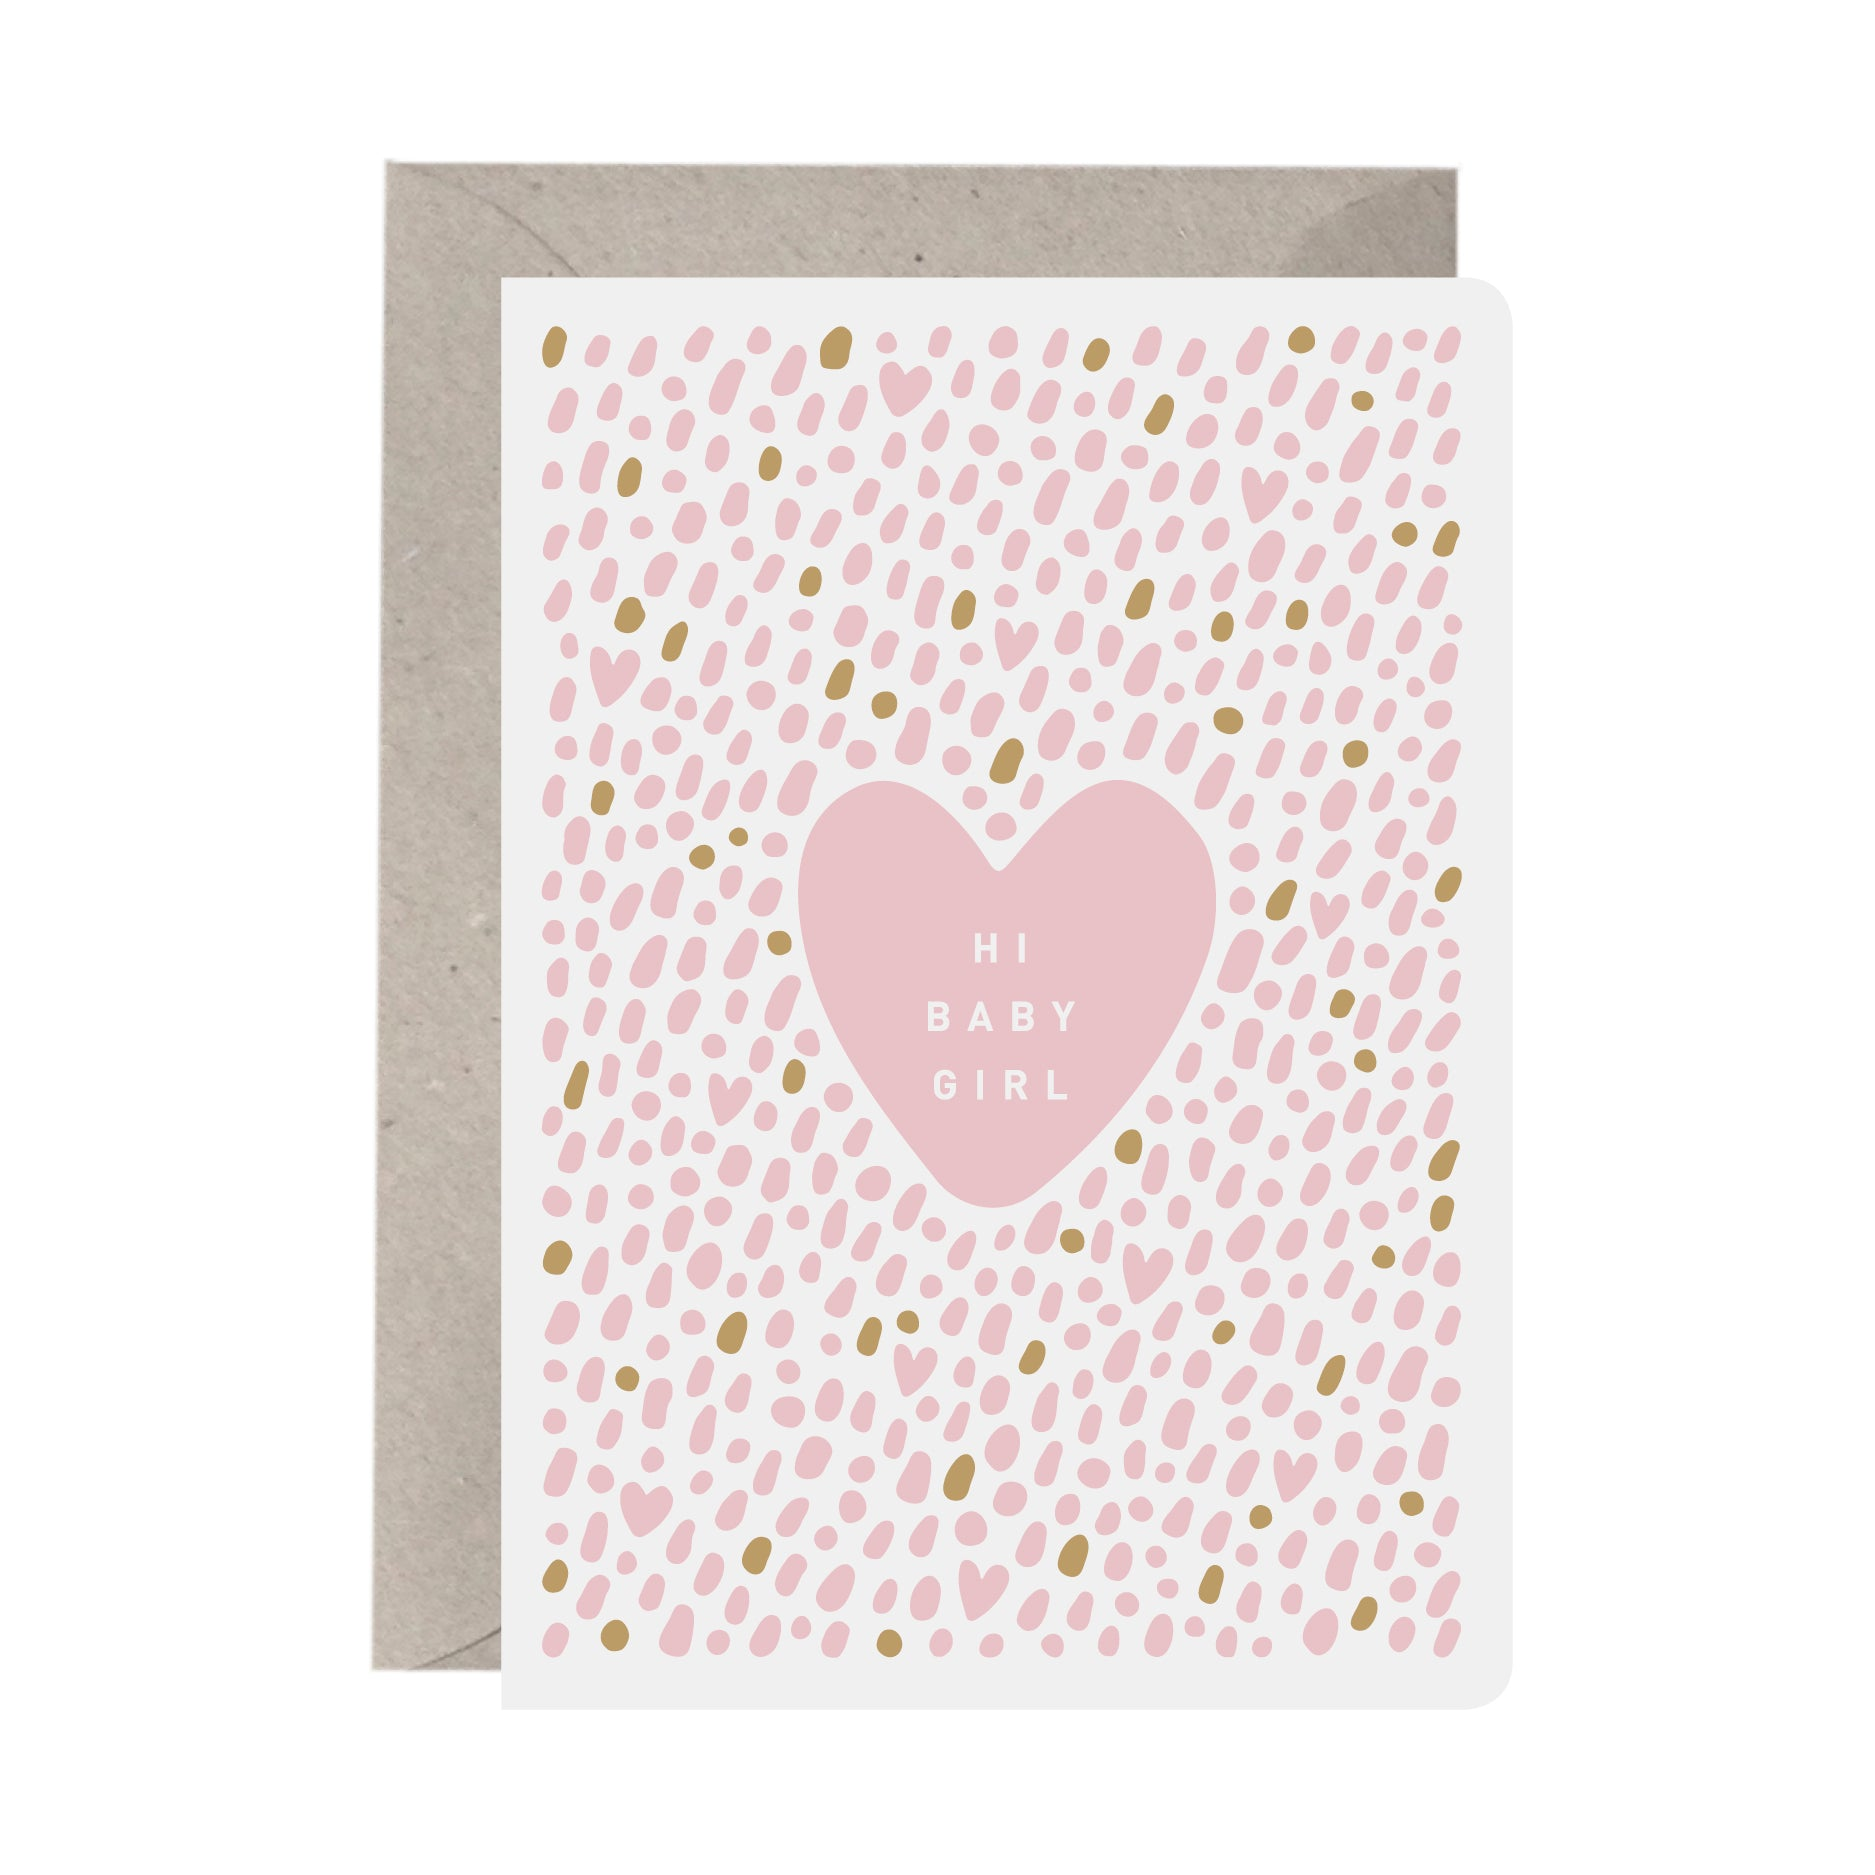 'Hi Baby Girl' New Baby Card